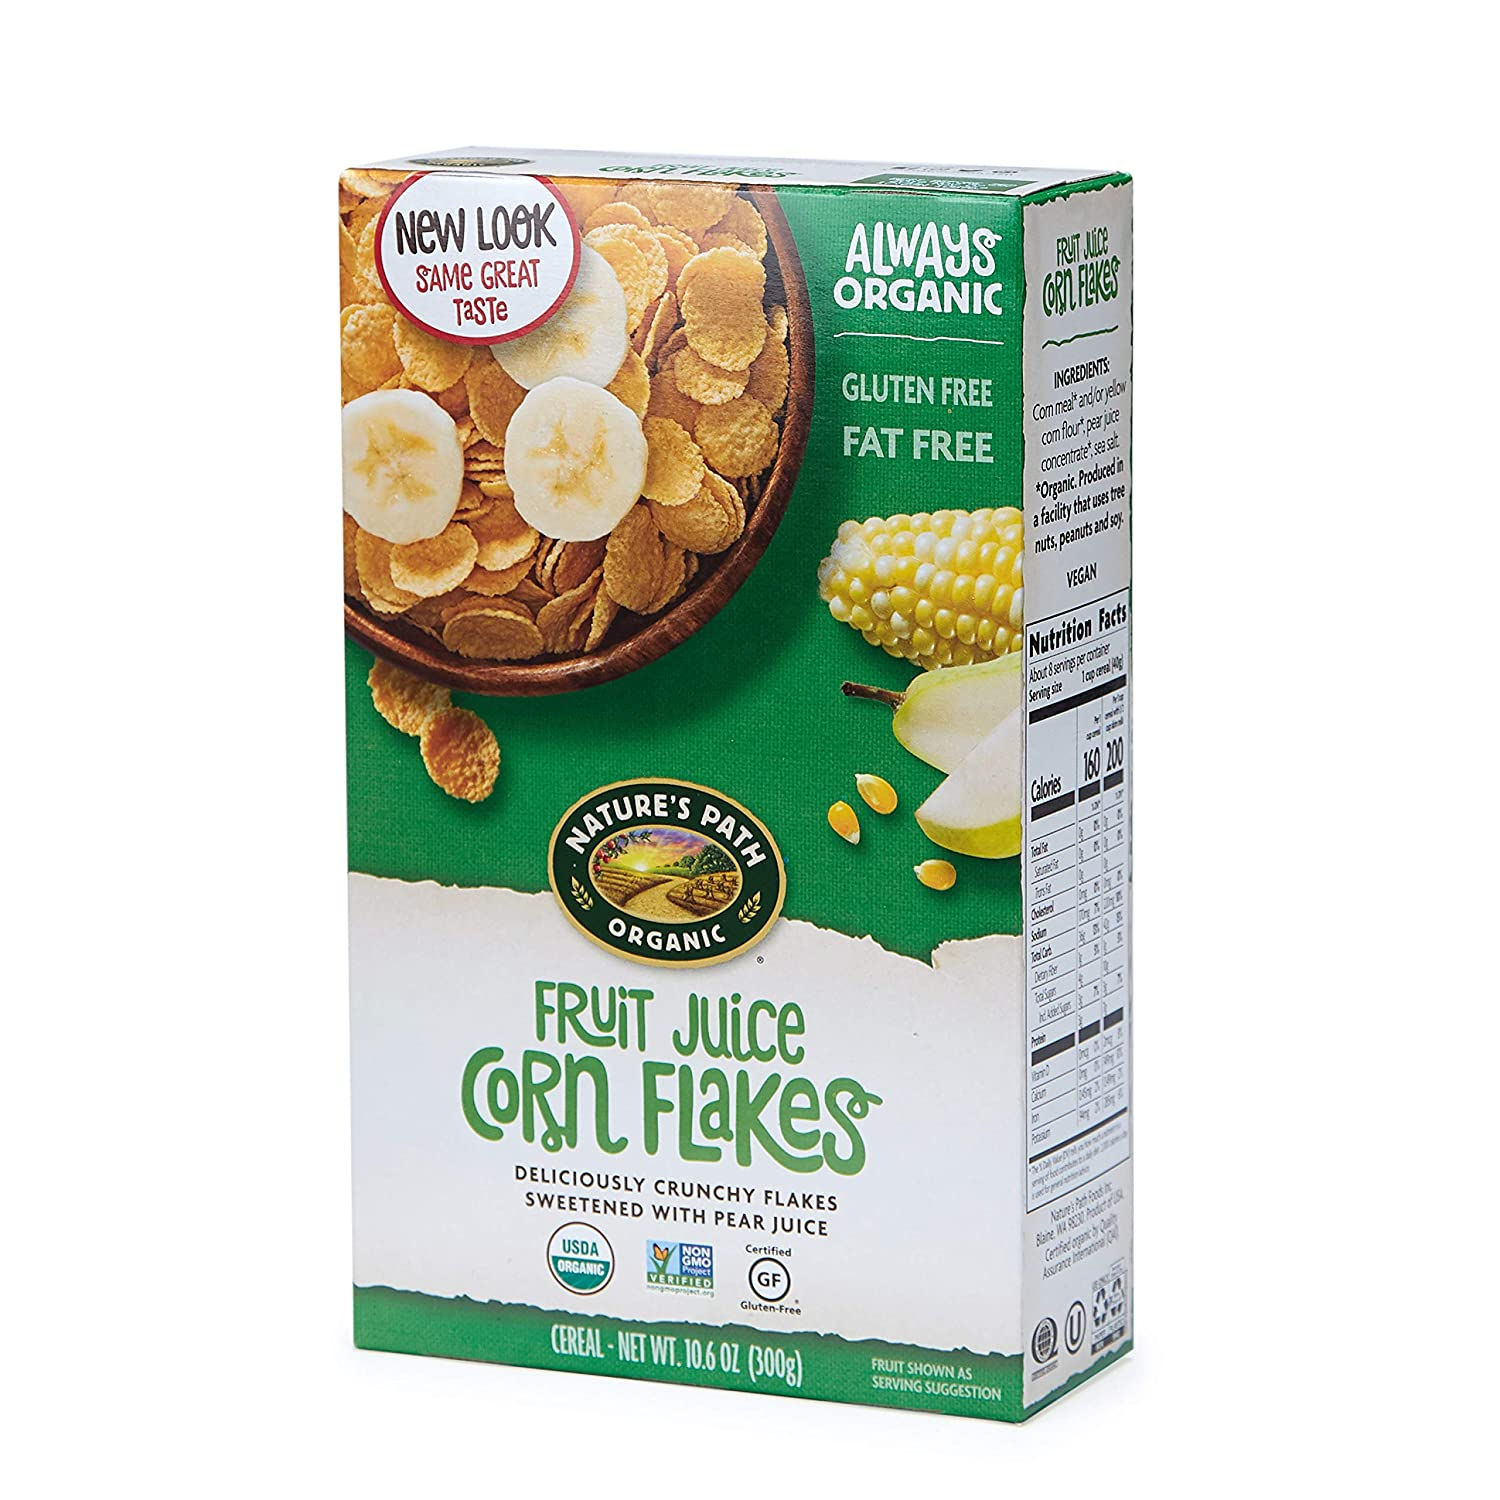 Nature's Path Fruit Juice Corn Flakes Cereal, Healthy, Organic, Gluten-Free, 10.6 Ounce Box